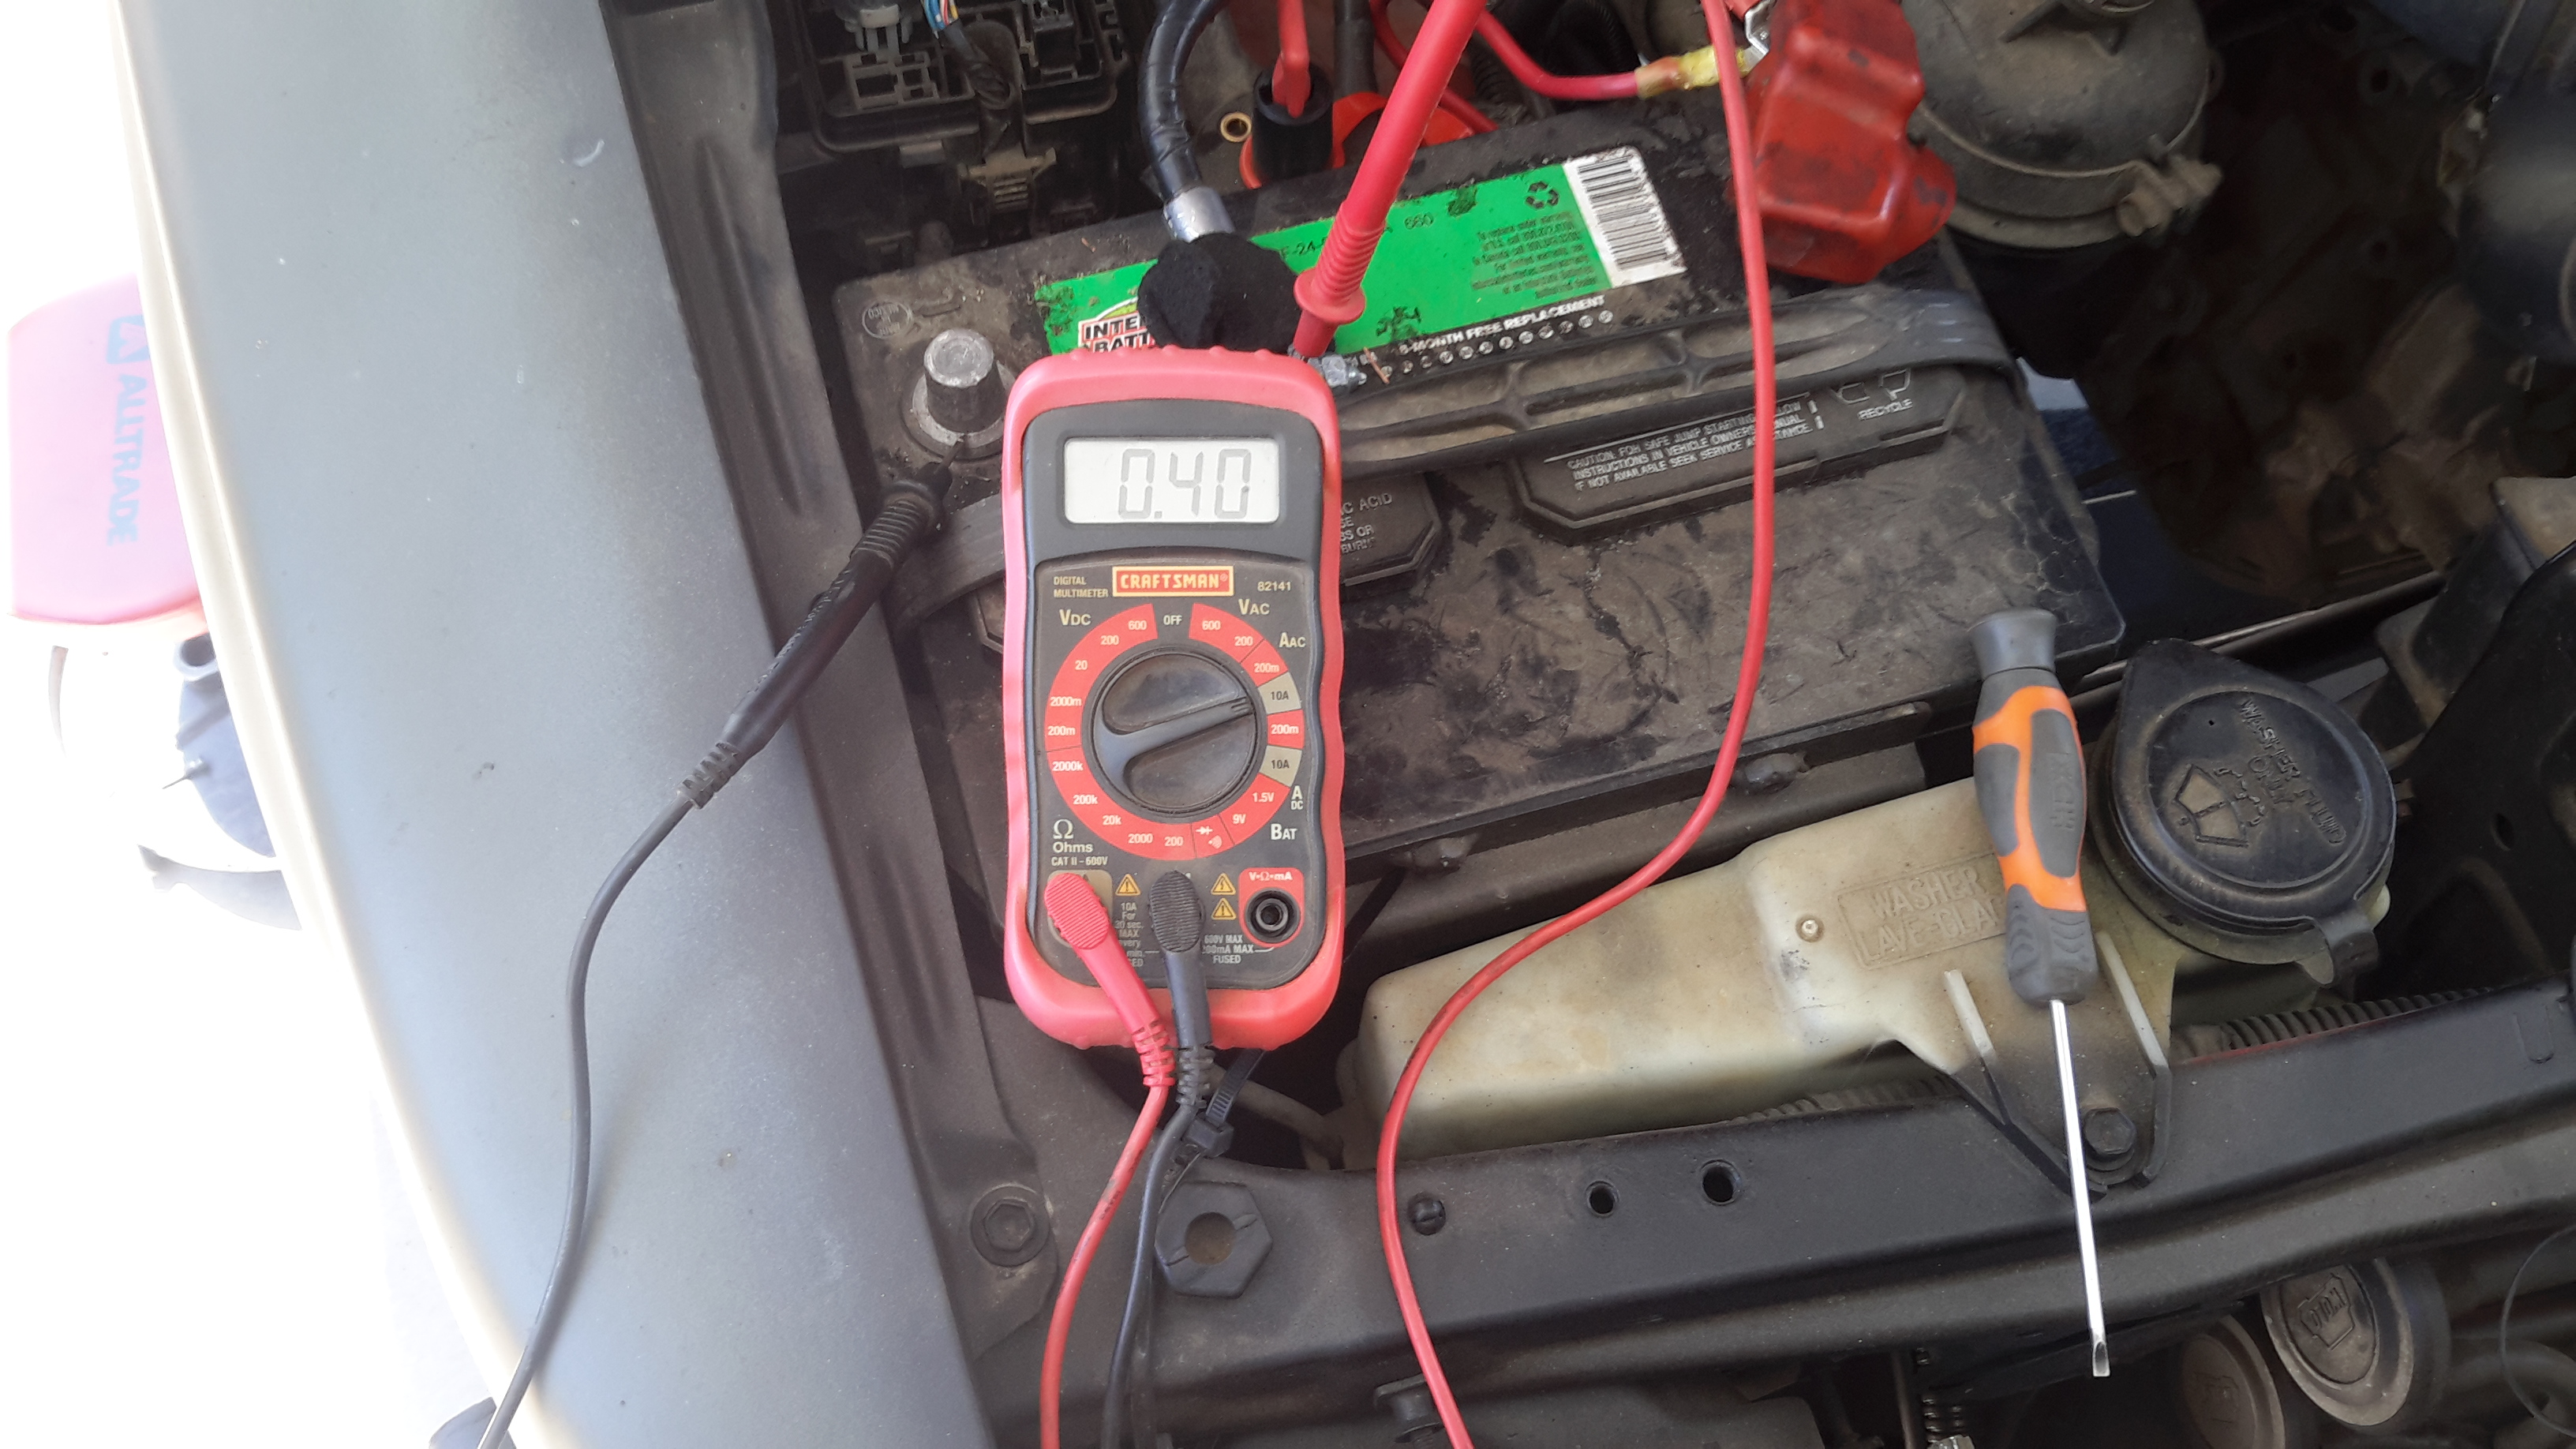 89 Toyota Pickup 22re Has A Parasitic Draw Causing Battery